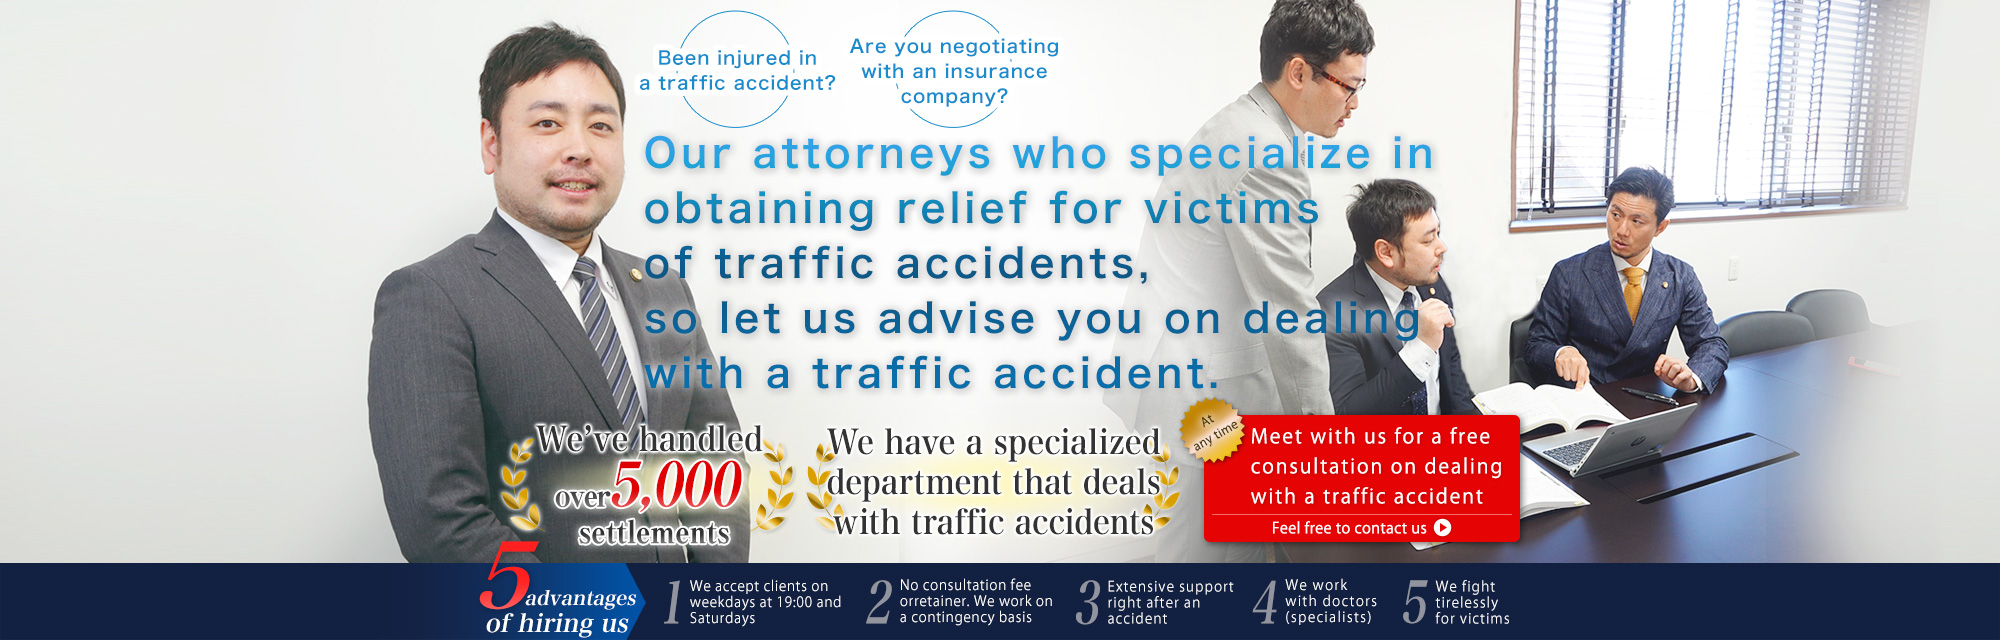 Our attorneys who specialize in obtaining relief for victims of traffic accidents, so let us advise you on dealing with a traffic accident.